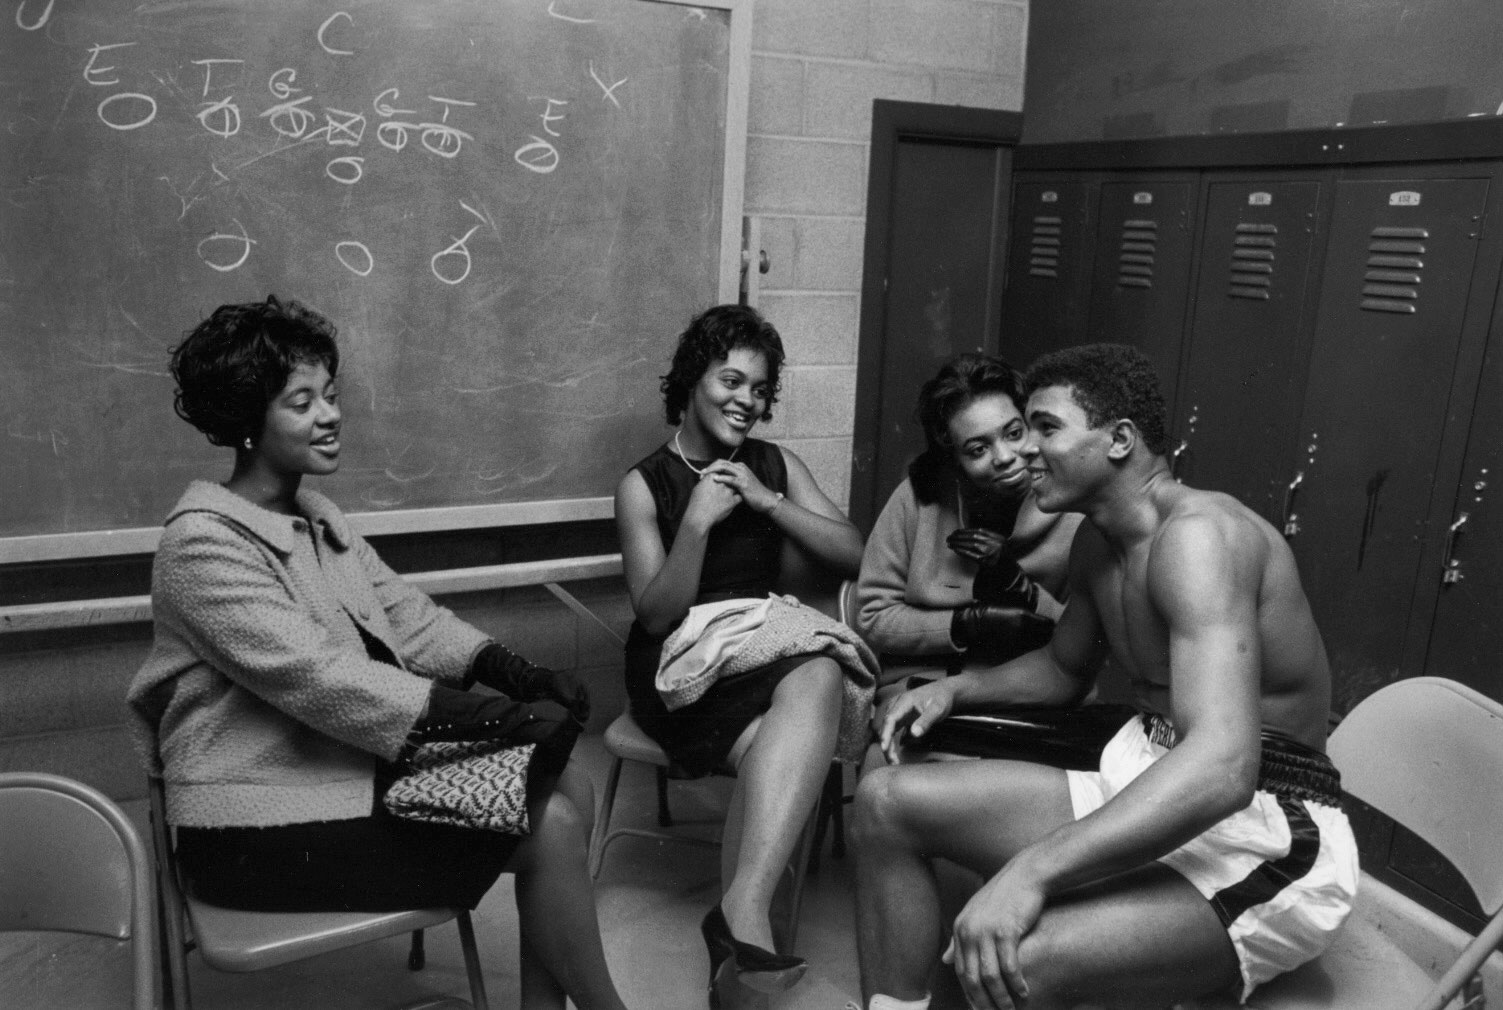 Ali talks to admirers and relatives in the basement of an arena before a fight on Oct. 7, 1961, in Louisville, Ky.